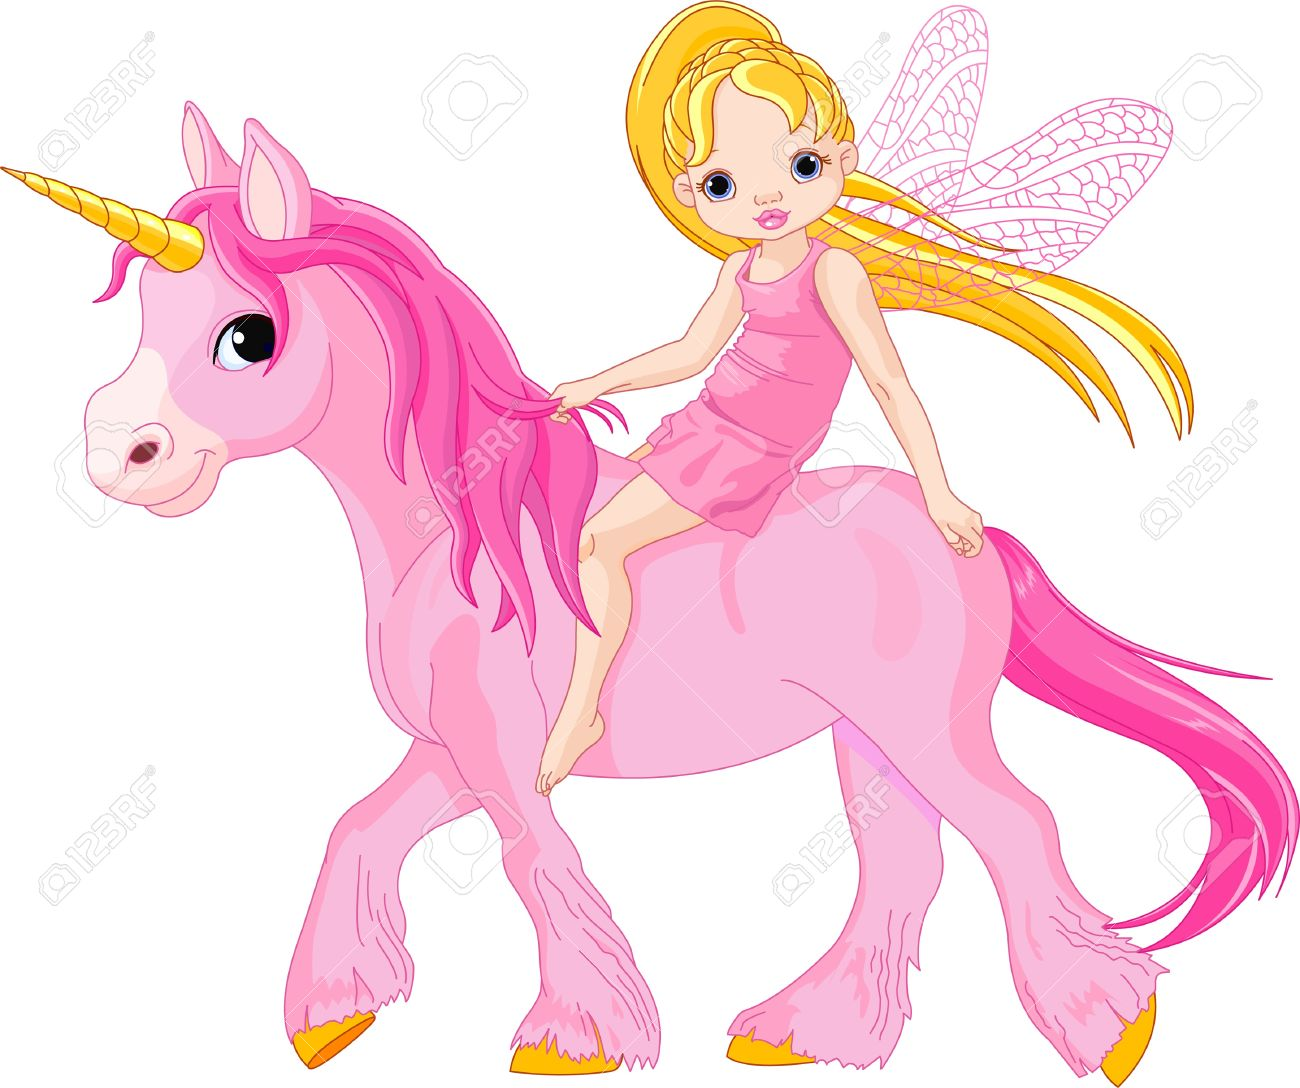 1300x1088 Cute Little Fairy Riding On A Unicorn Royalty Free Cliparts